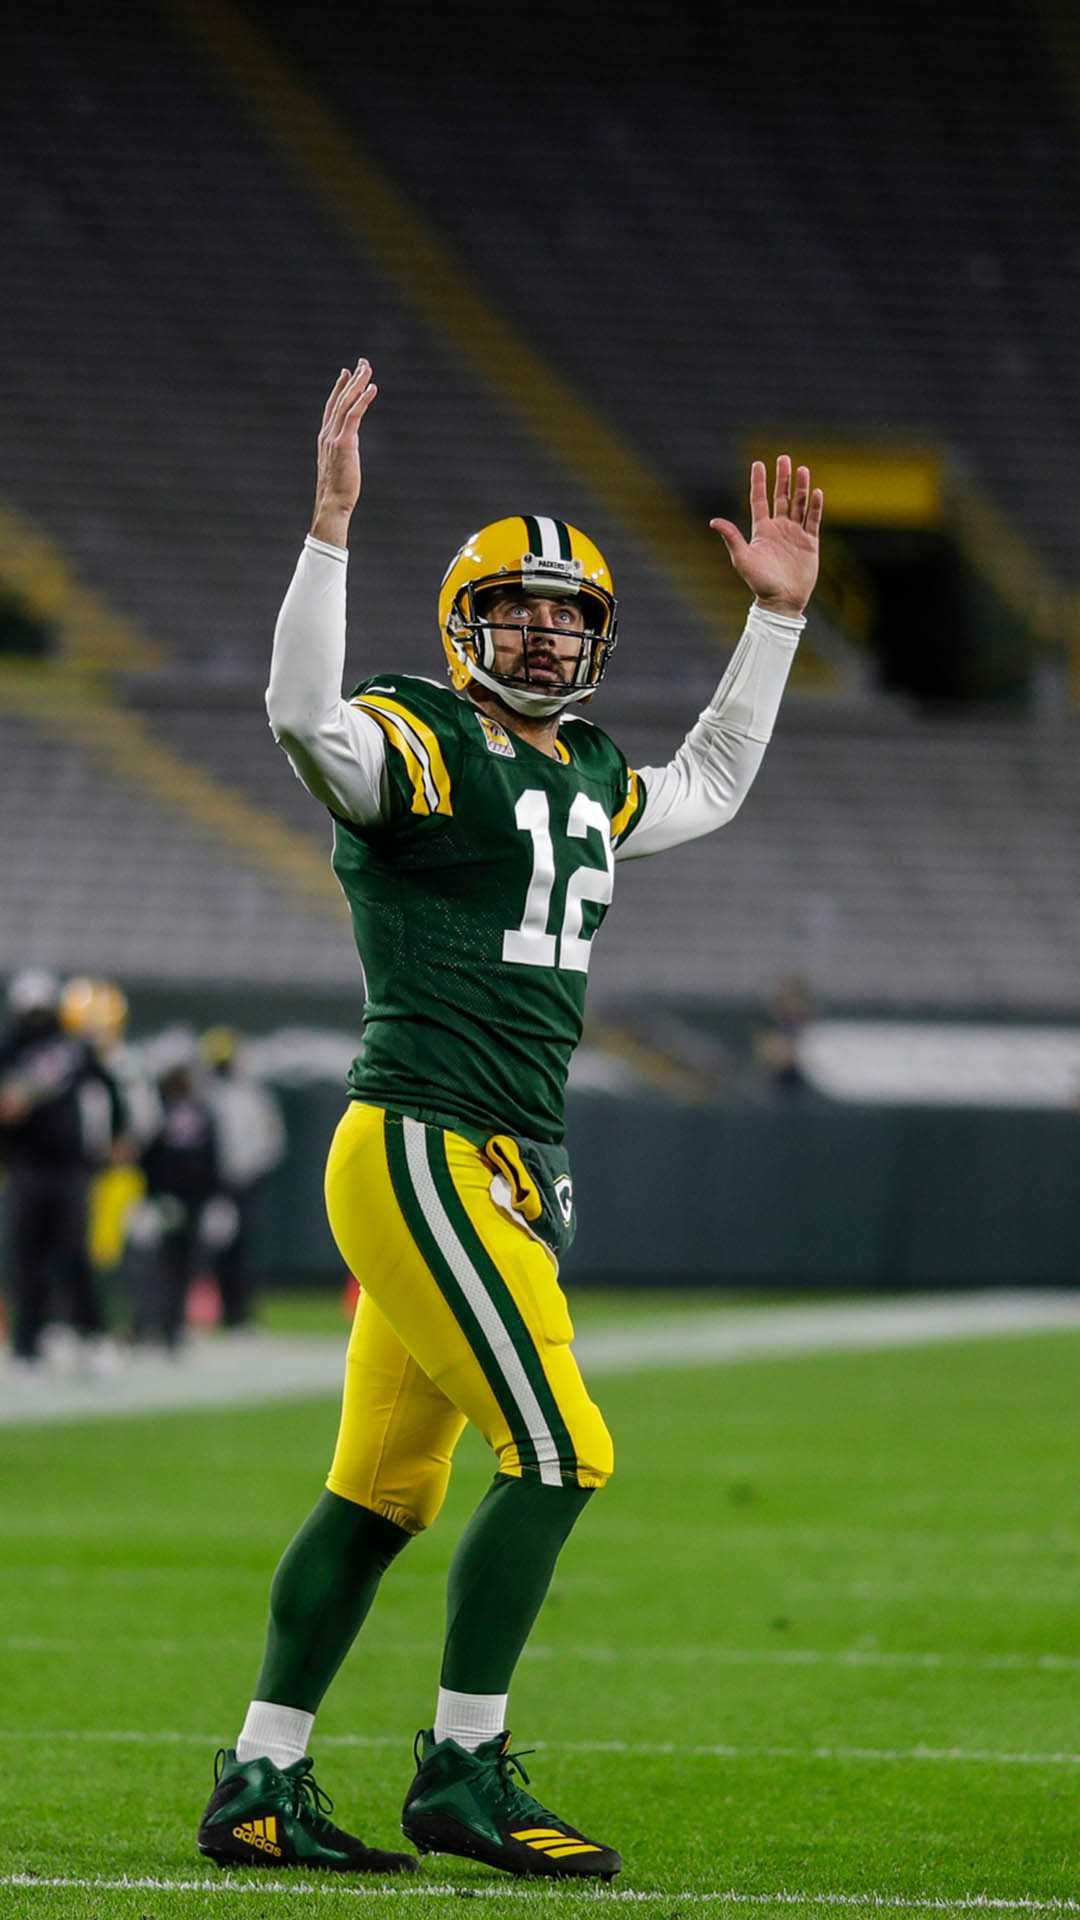 Aaron Rodgers Wallpaper iPhone - KoLPaPer - Awesome Free ...